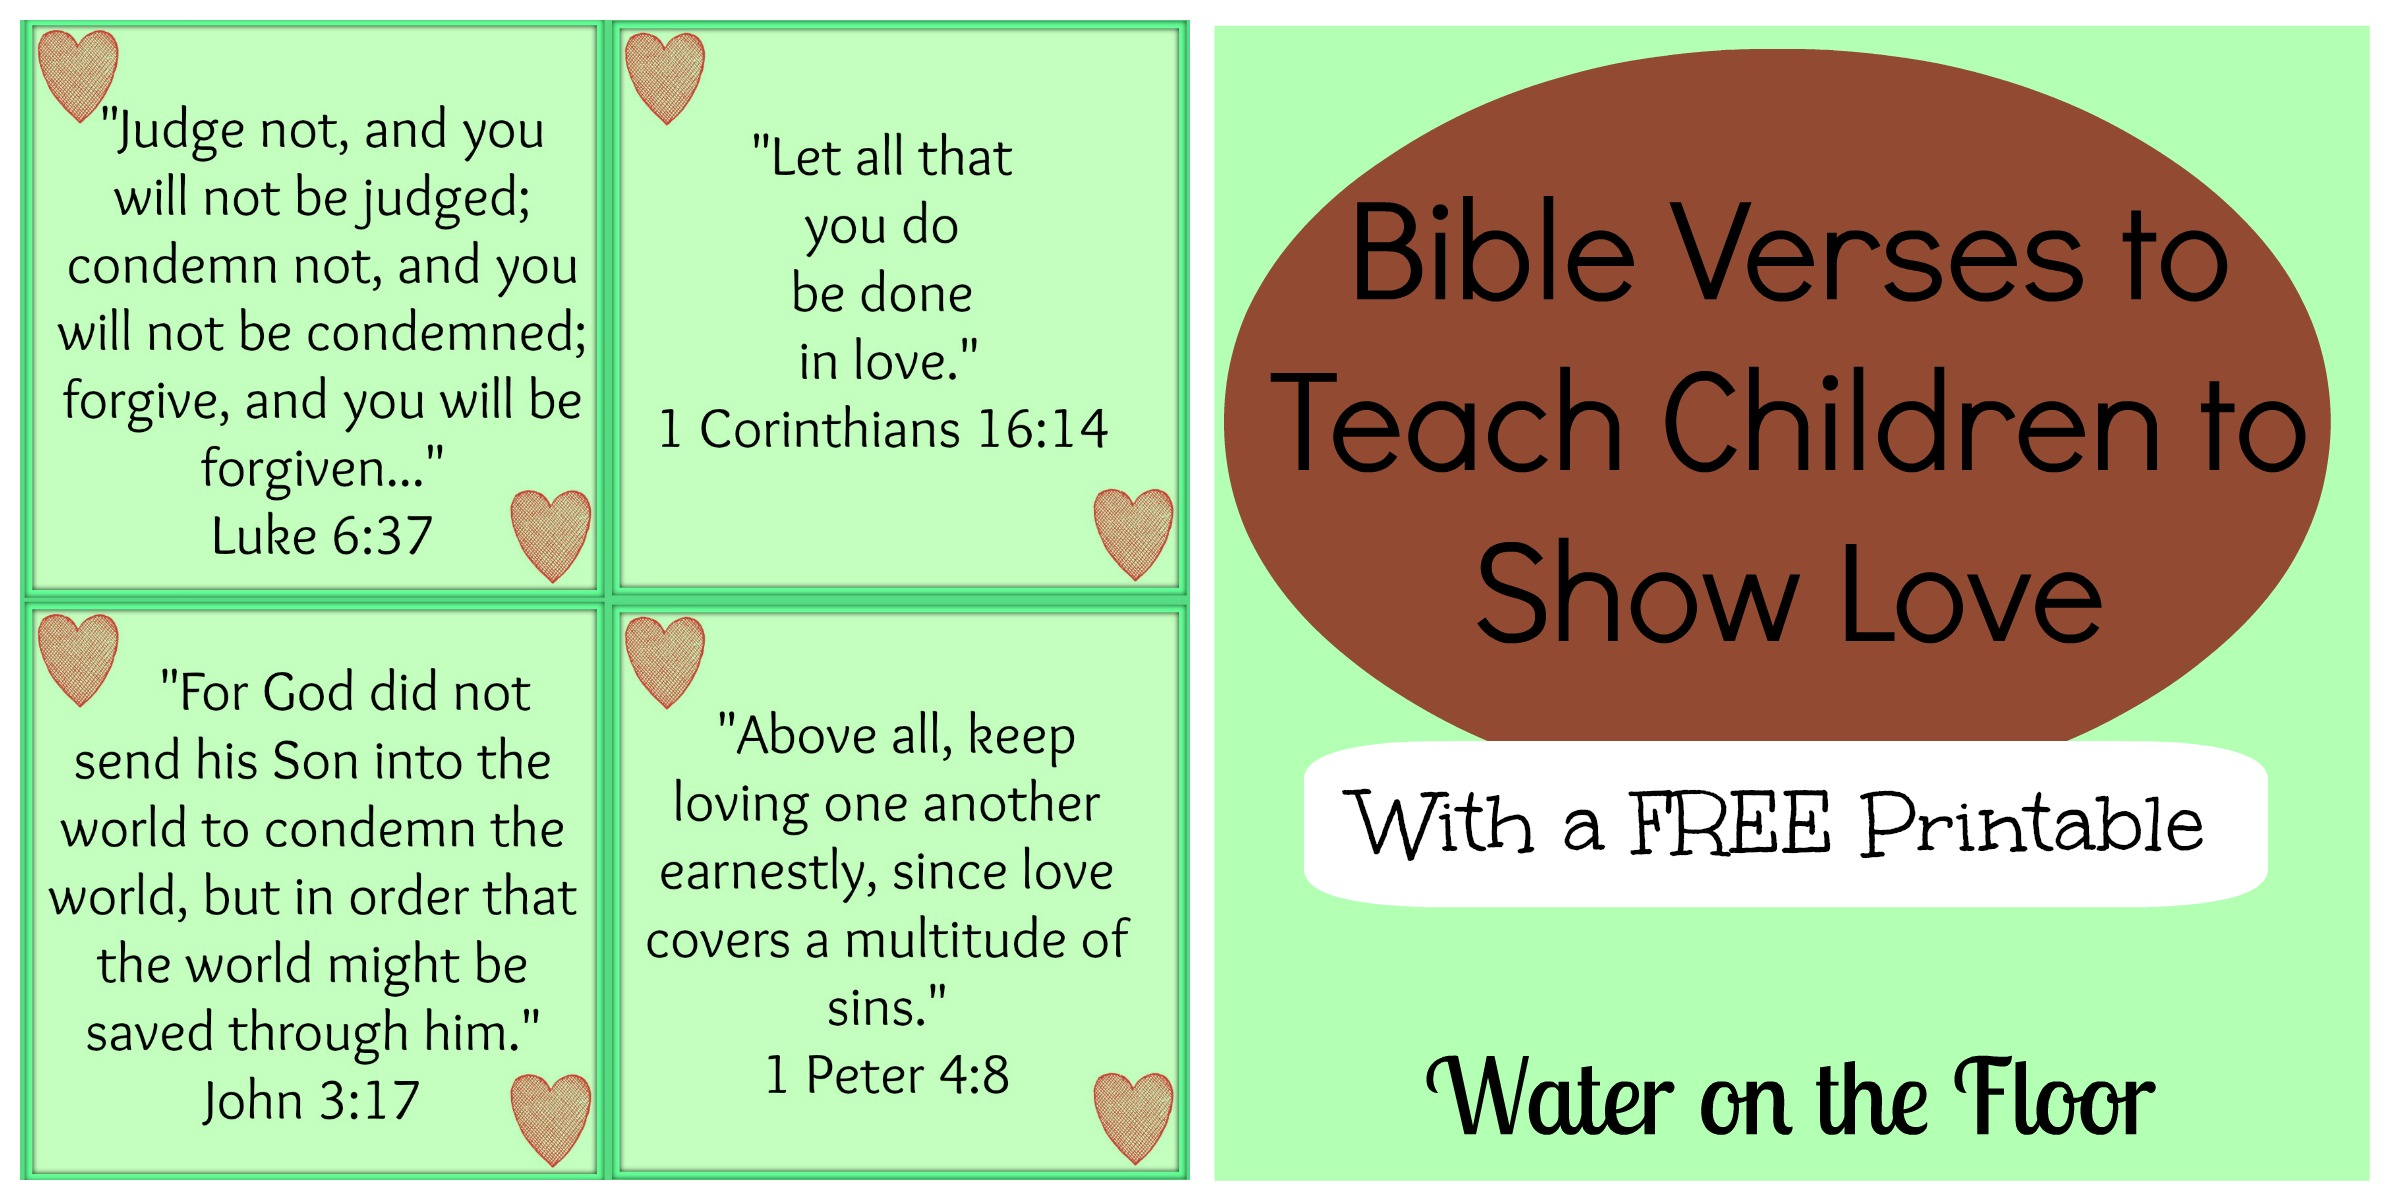 Love For Childrens Quotes Bible Verses To Teach Children To Show Love With A Free Printable